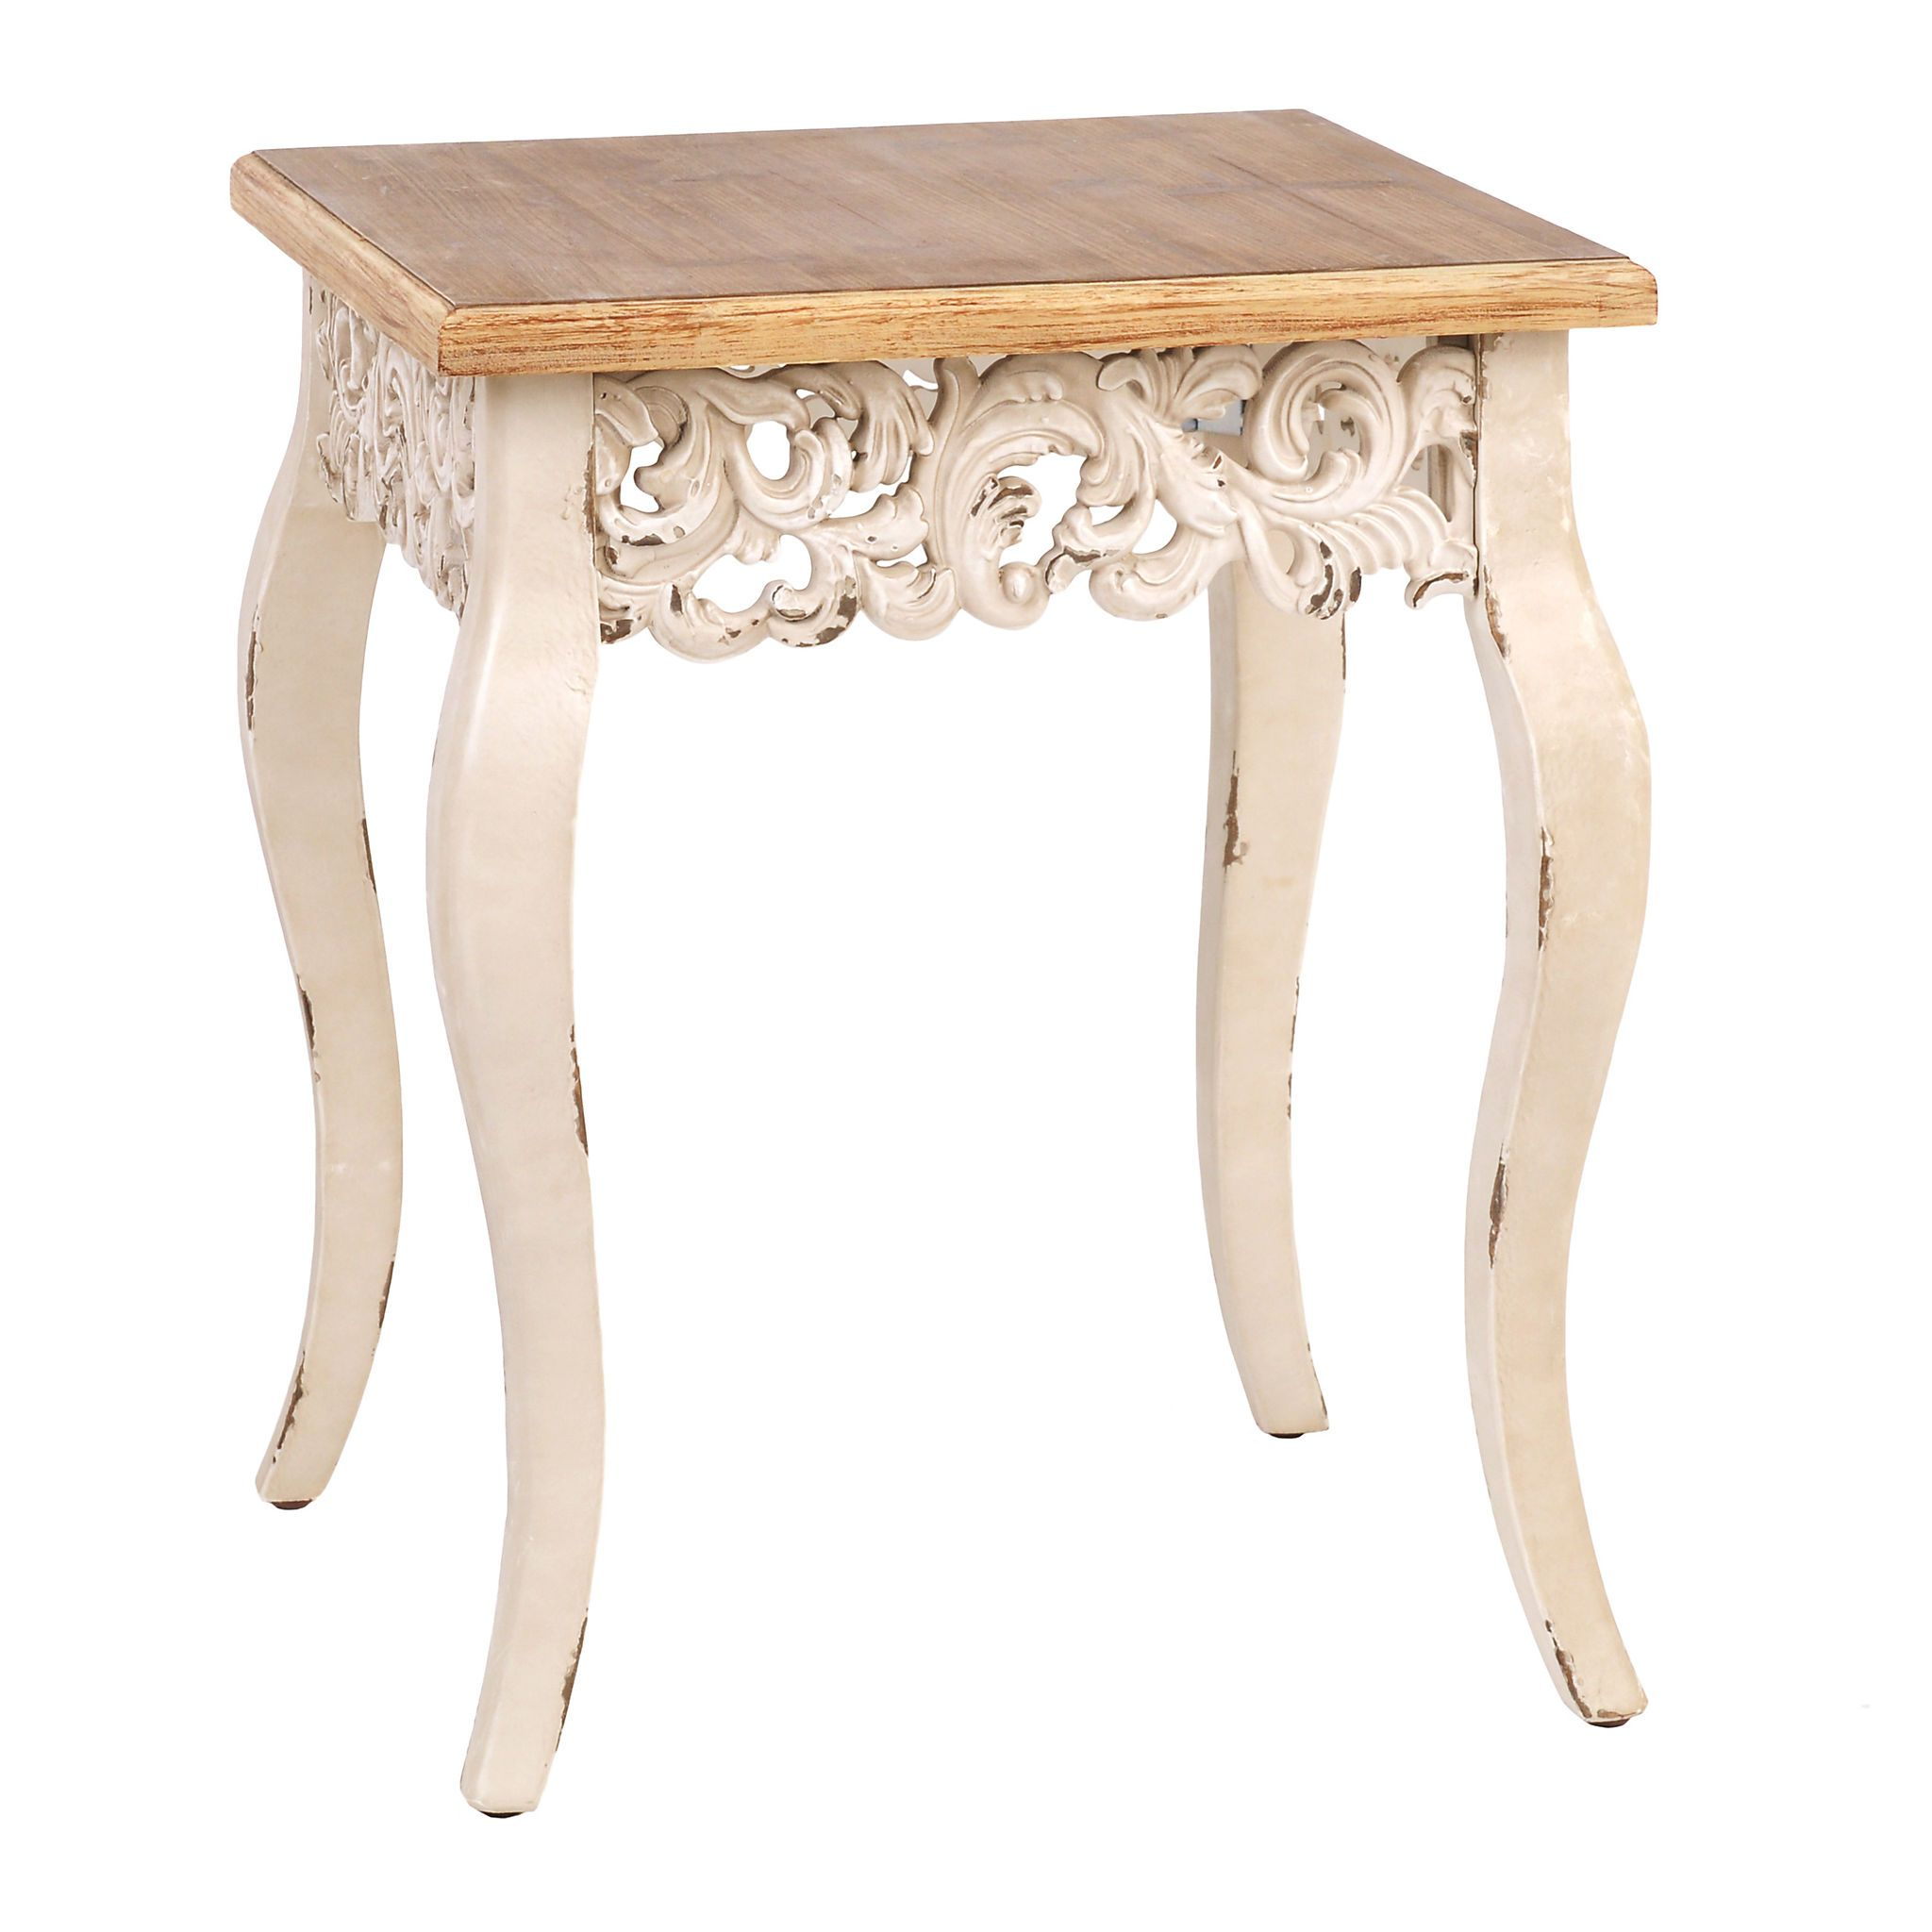 ivory baroque accent table home sweet kirklands tables end stand diamond mirrored outdoor lamps battery operated living room coffee decor runner side between two chairs polished